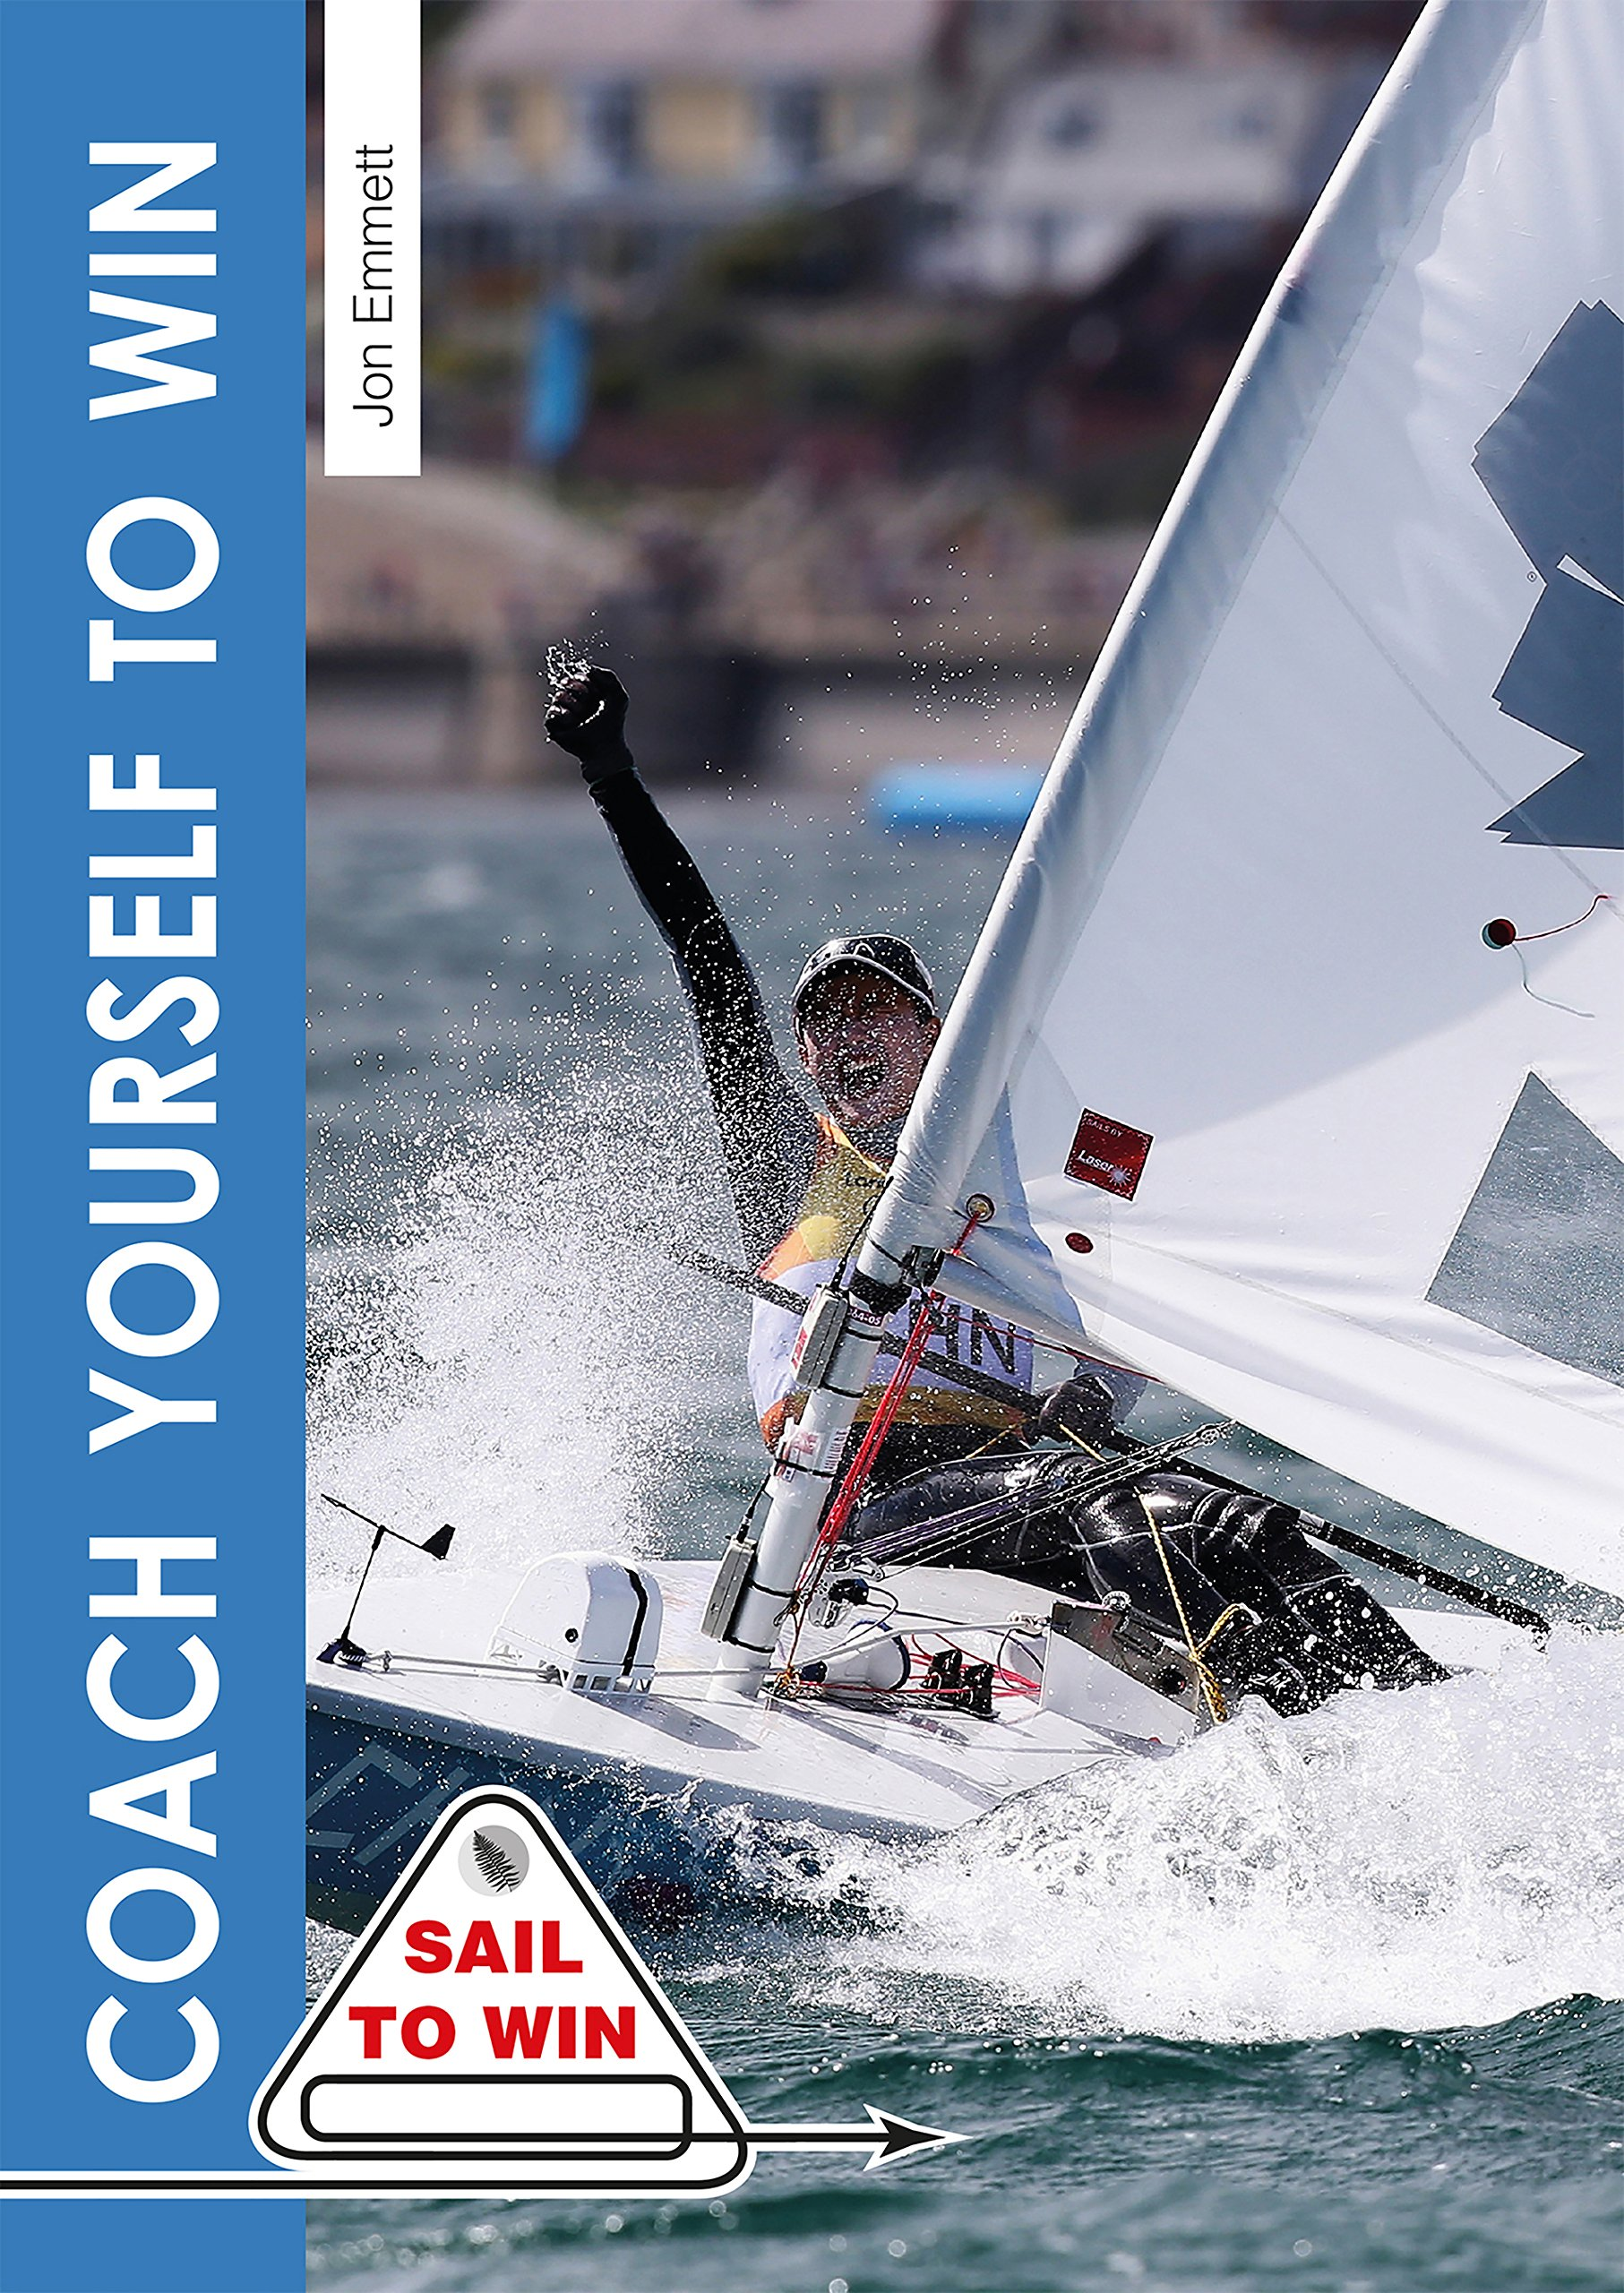 Coach Yourself to Win (Sail to Win) PDF